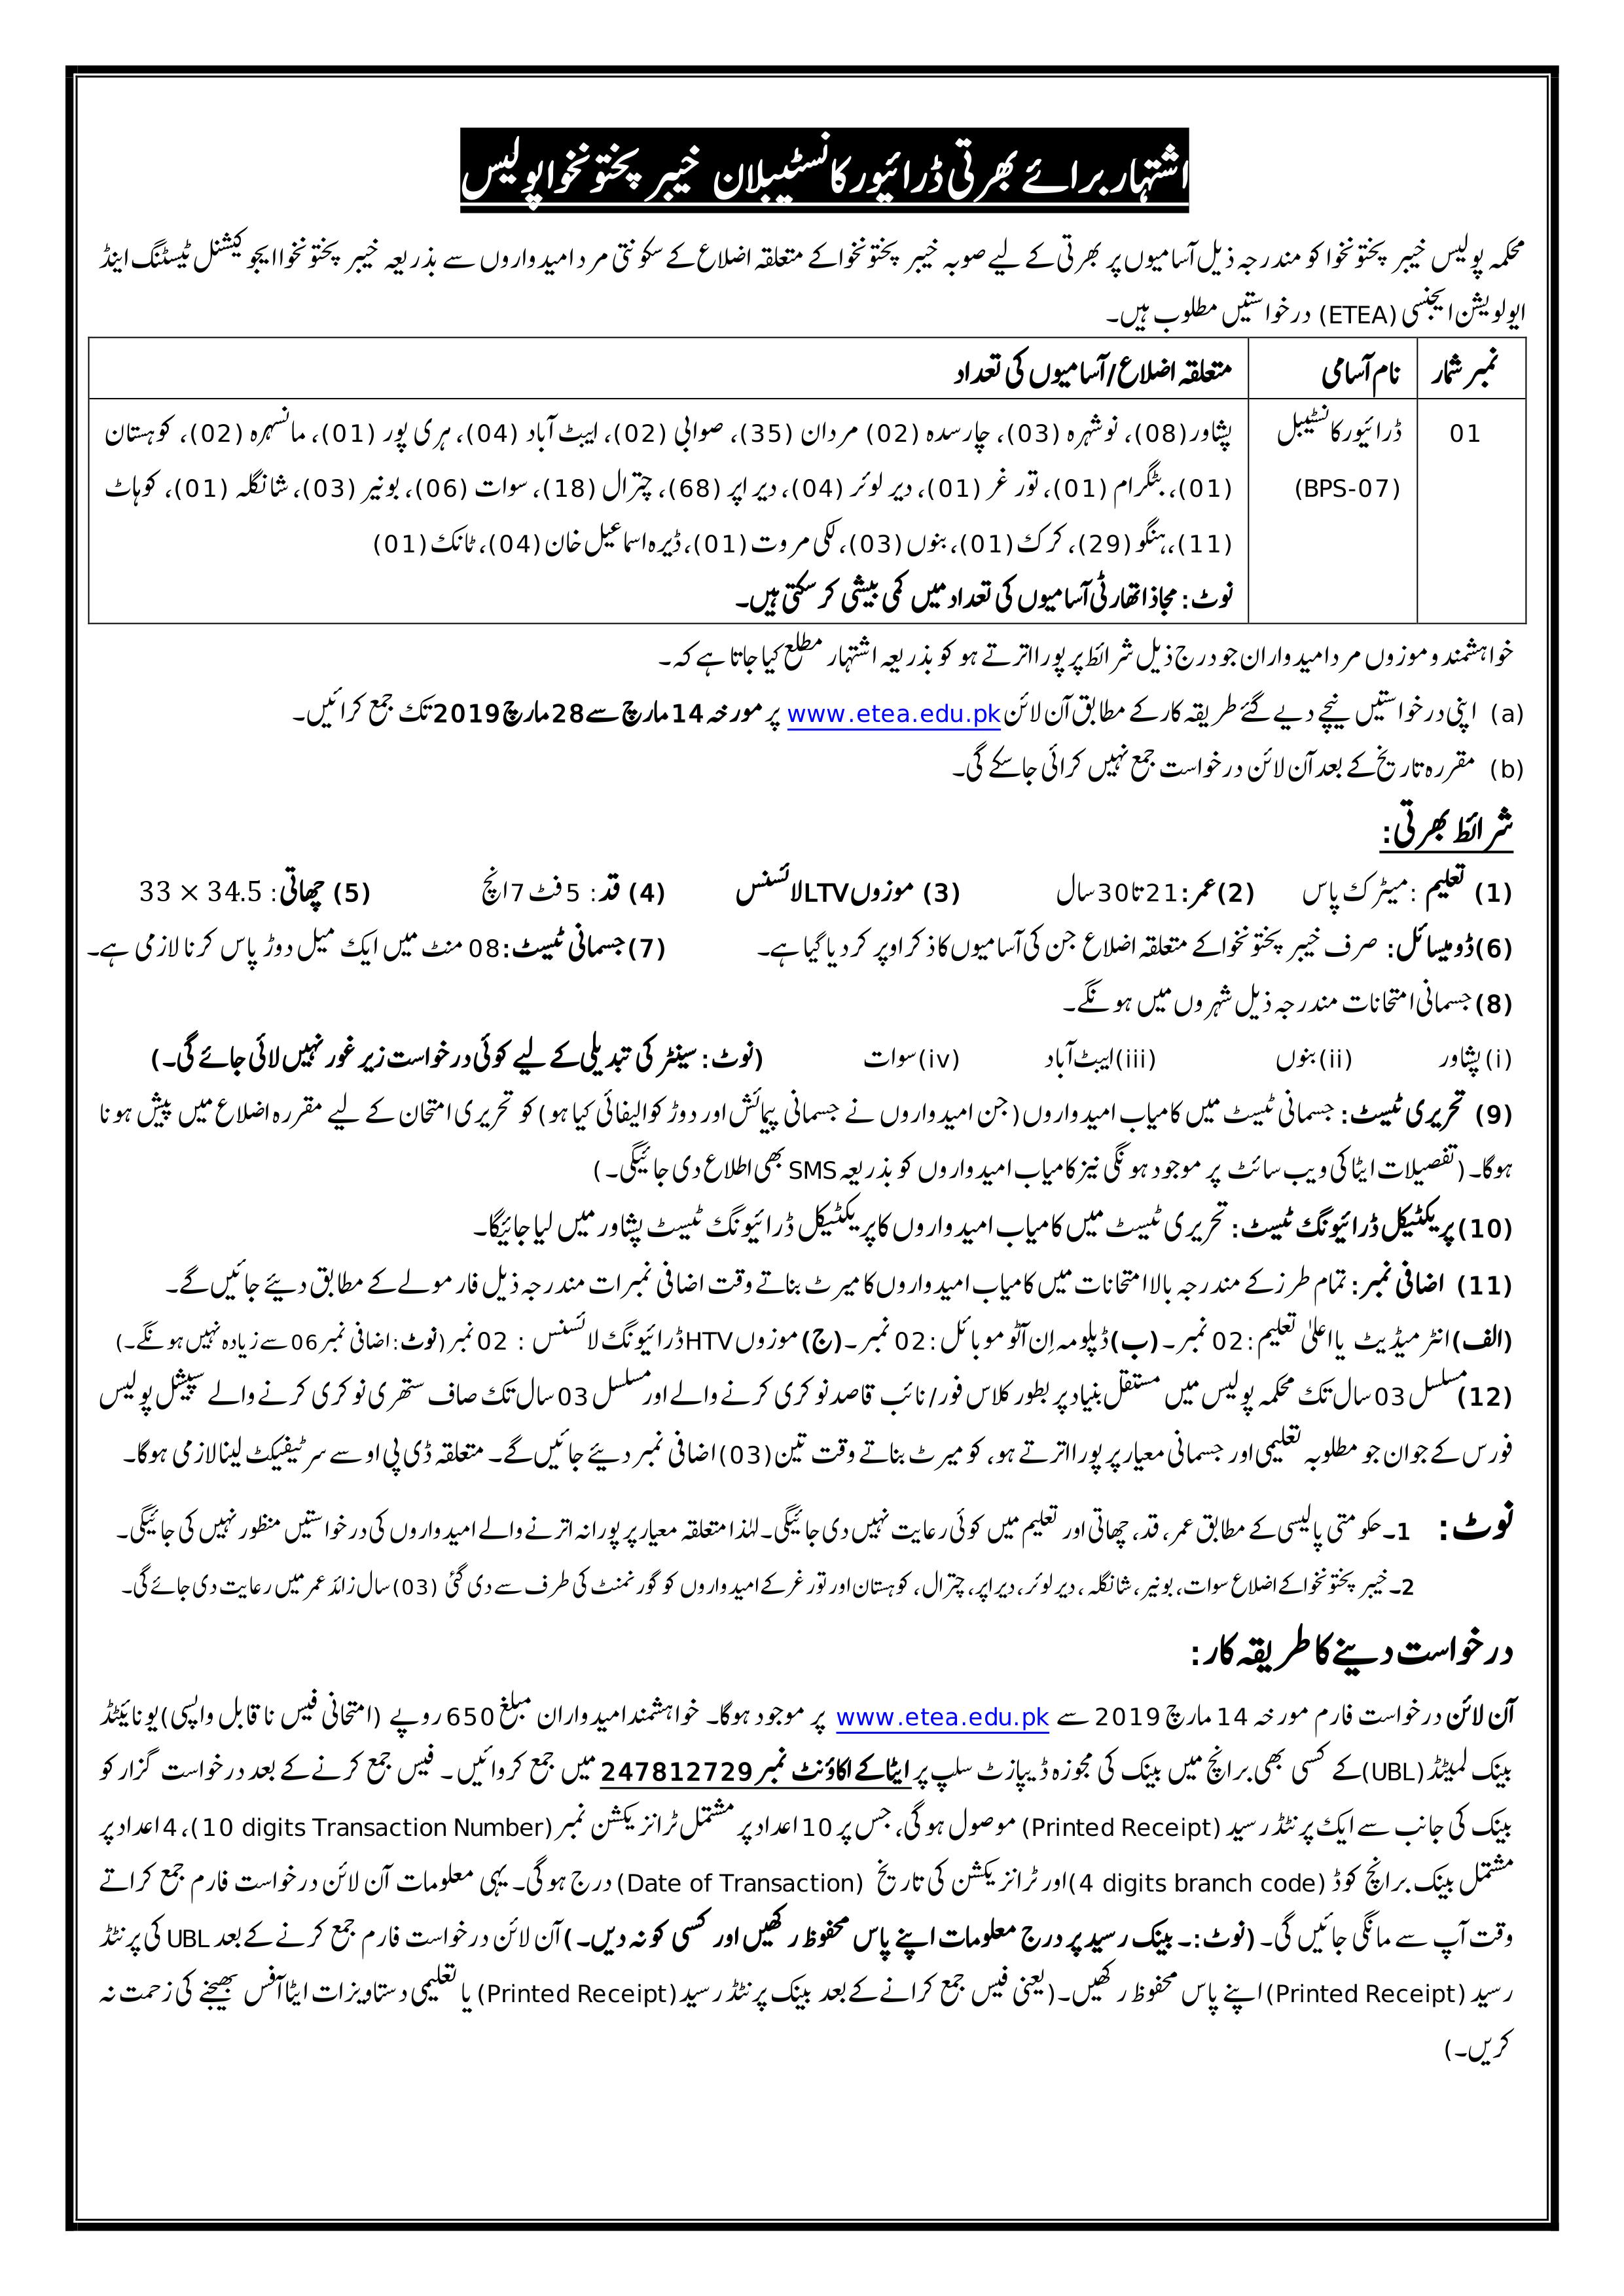 KPK Police Department Police Driver Police Constable Jobs ETEA Test Roll No Slip